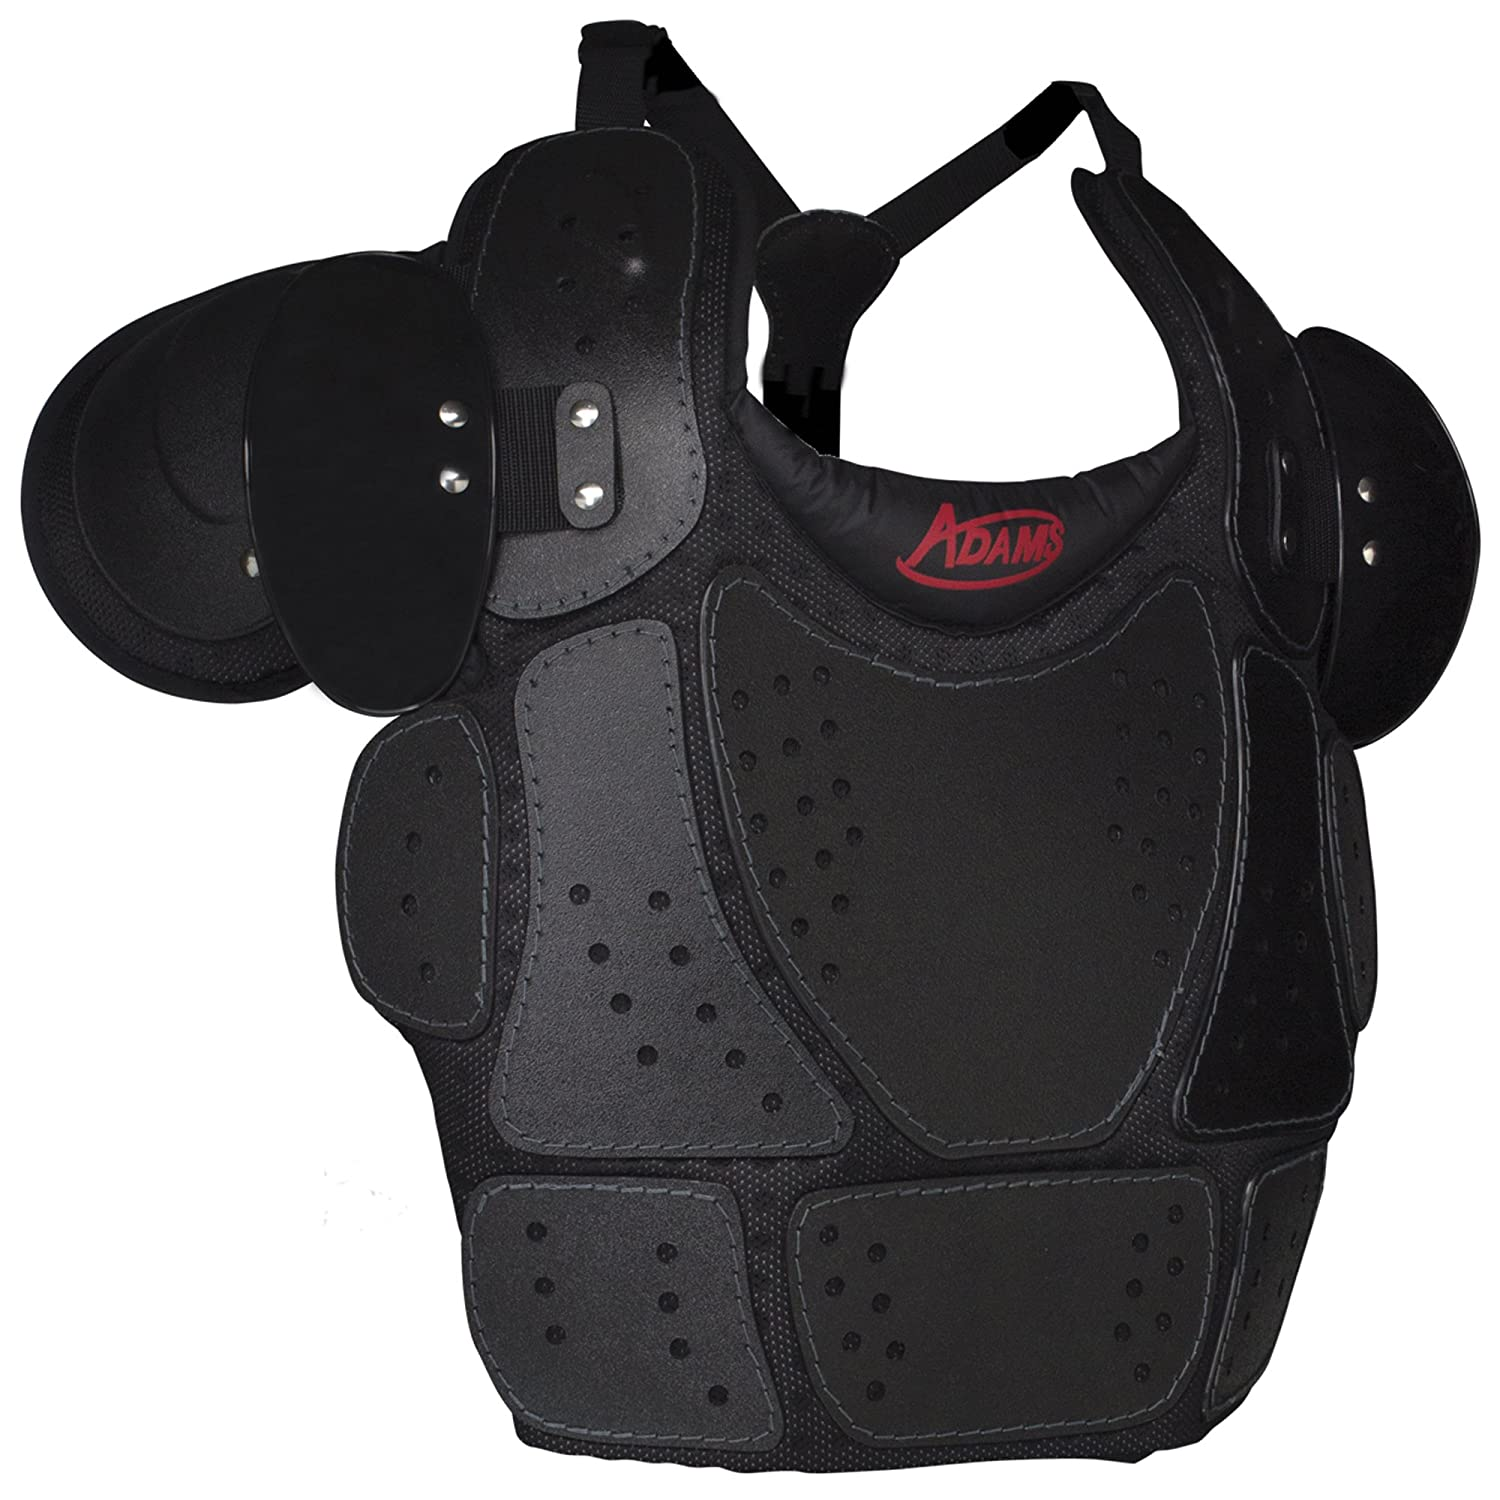 ADAMS USA ULP-CP-12 Umpire Low Profile Chest Protector, Black, One Size Schutt Sports